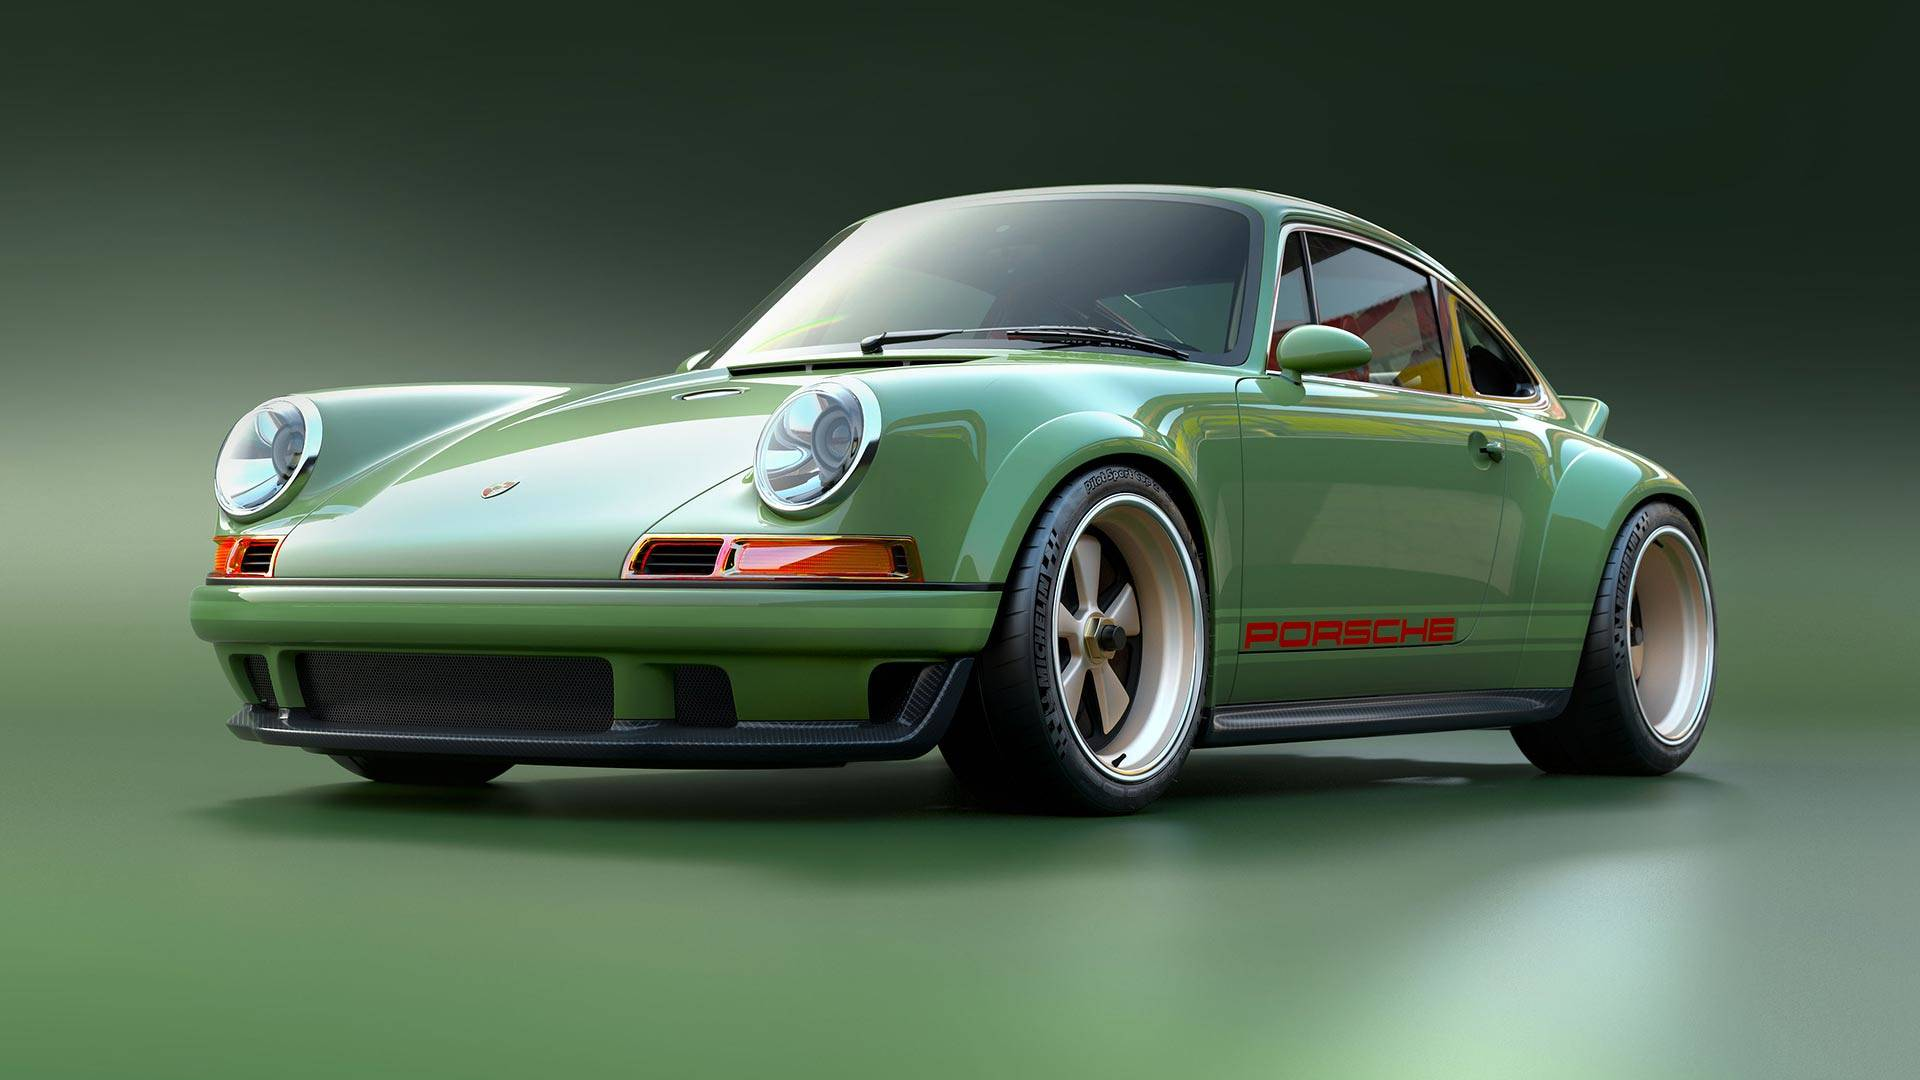 Build A Dodge >> Sensationally Sexy Singer Porsche 911 With 500 HP Williams Engine